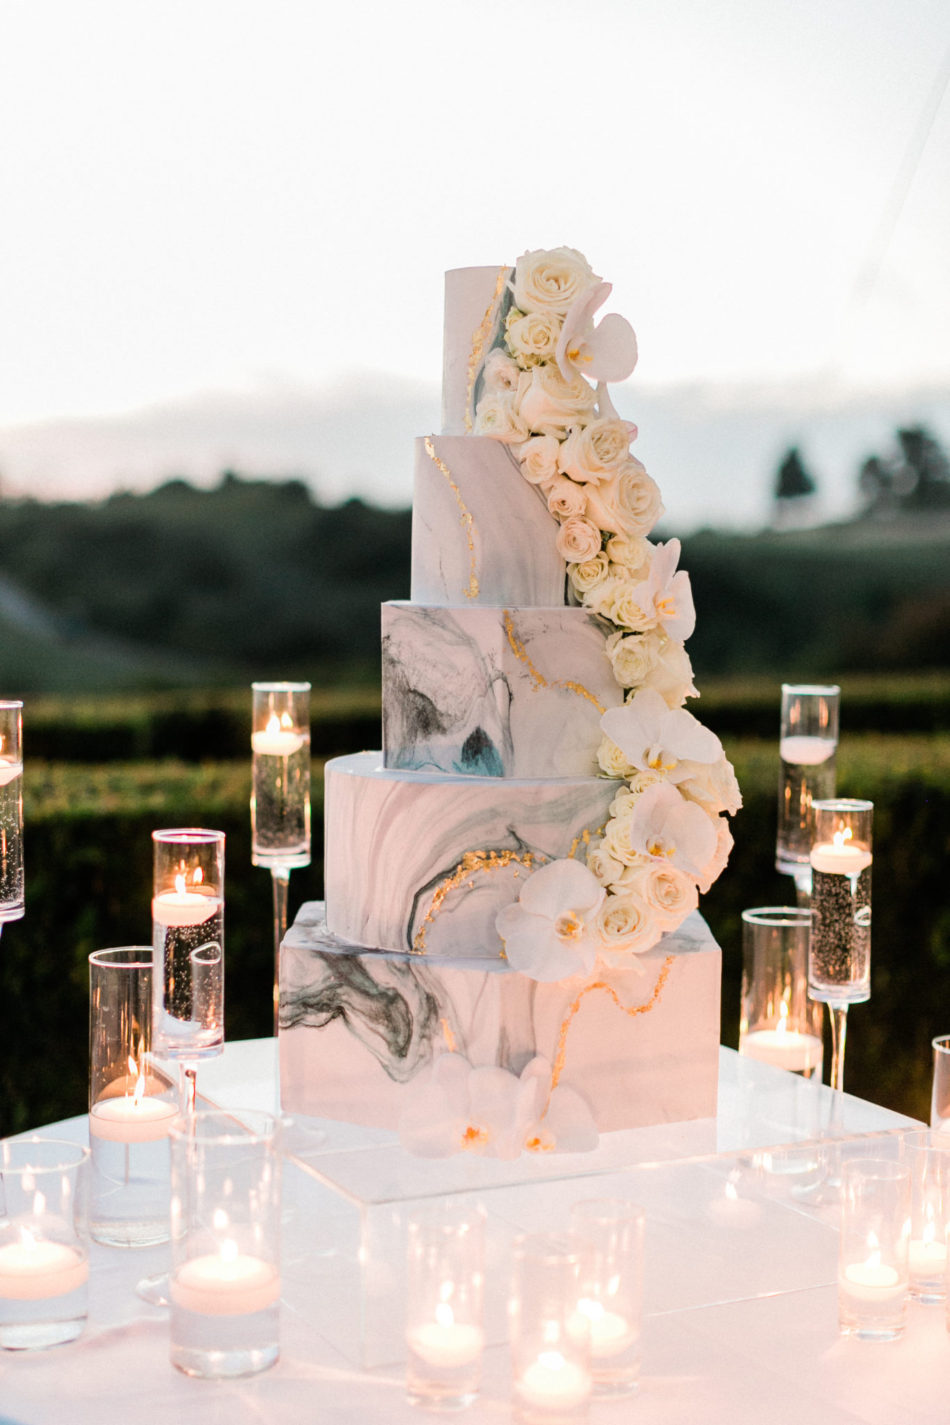 carats cake feature, wedding cake, marble cake, floral design, florist, wedding florist, wedding flowers, orange county weddings, orange county wedding florist, orange county florist, orange county floral design, flowers by cina